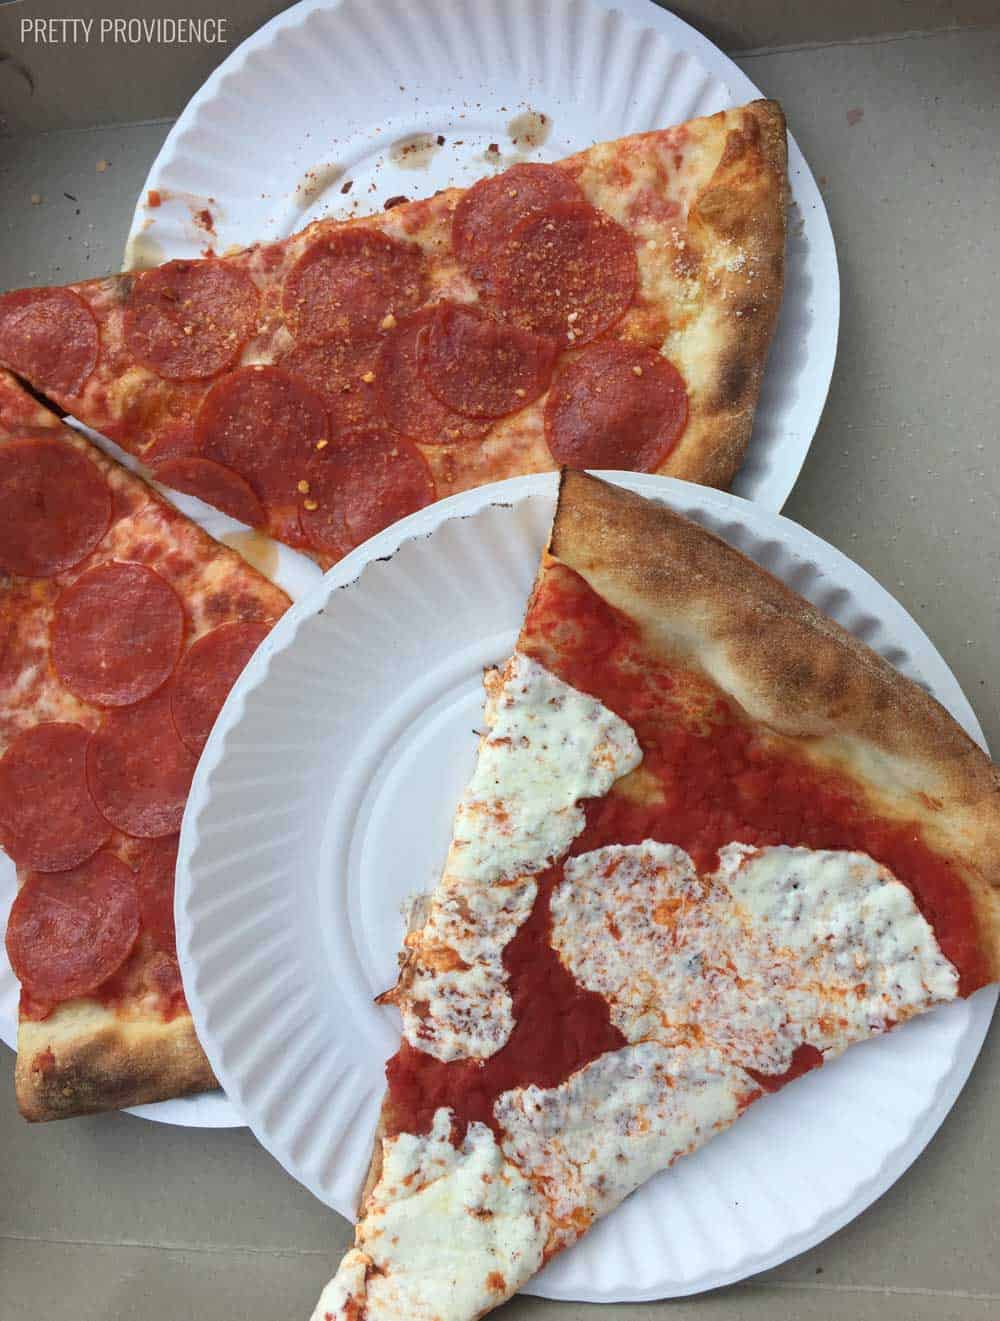 Cheap, AMAZING pizza is everywhere in NYC!